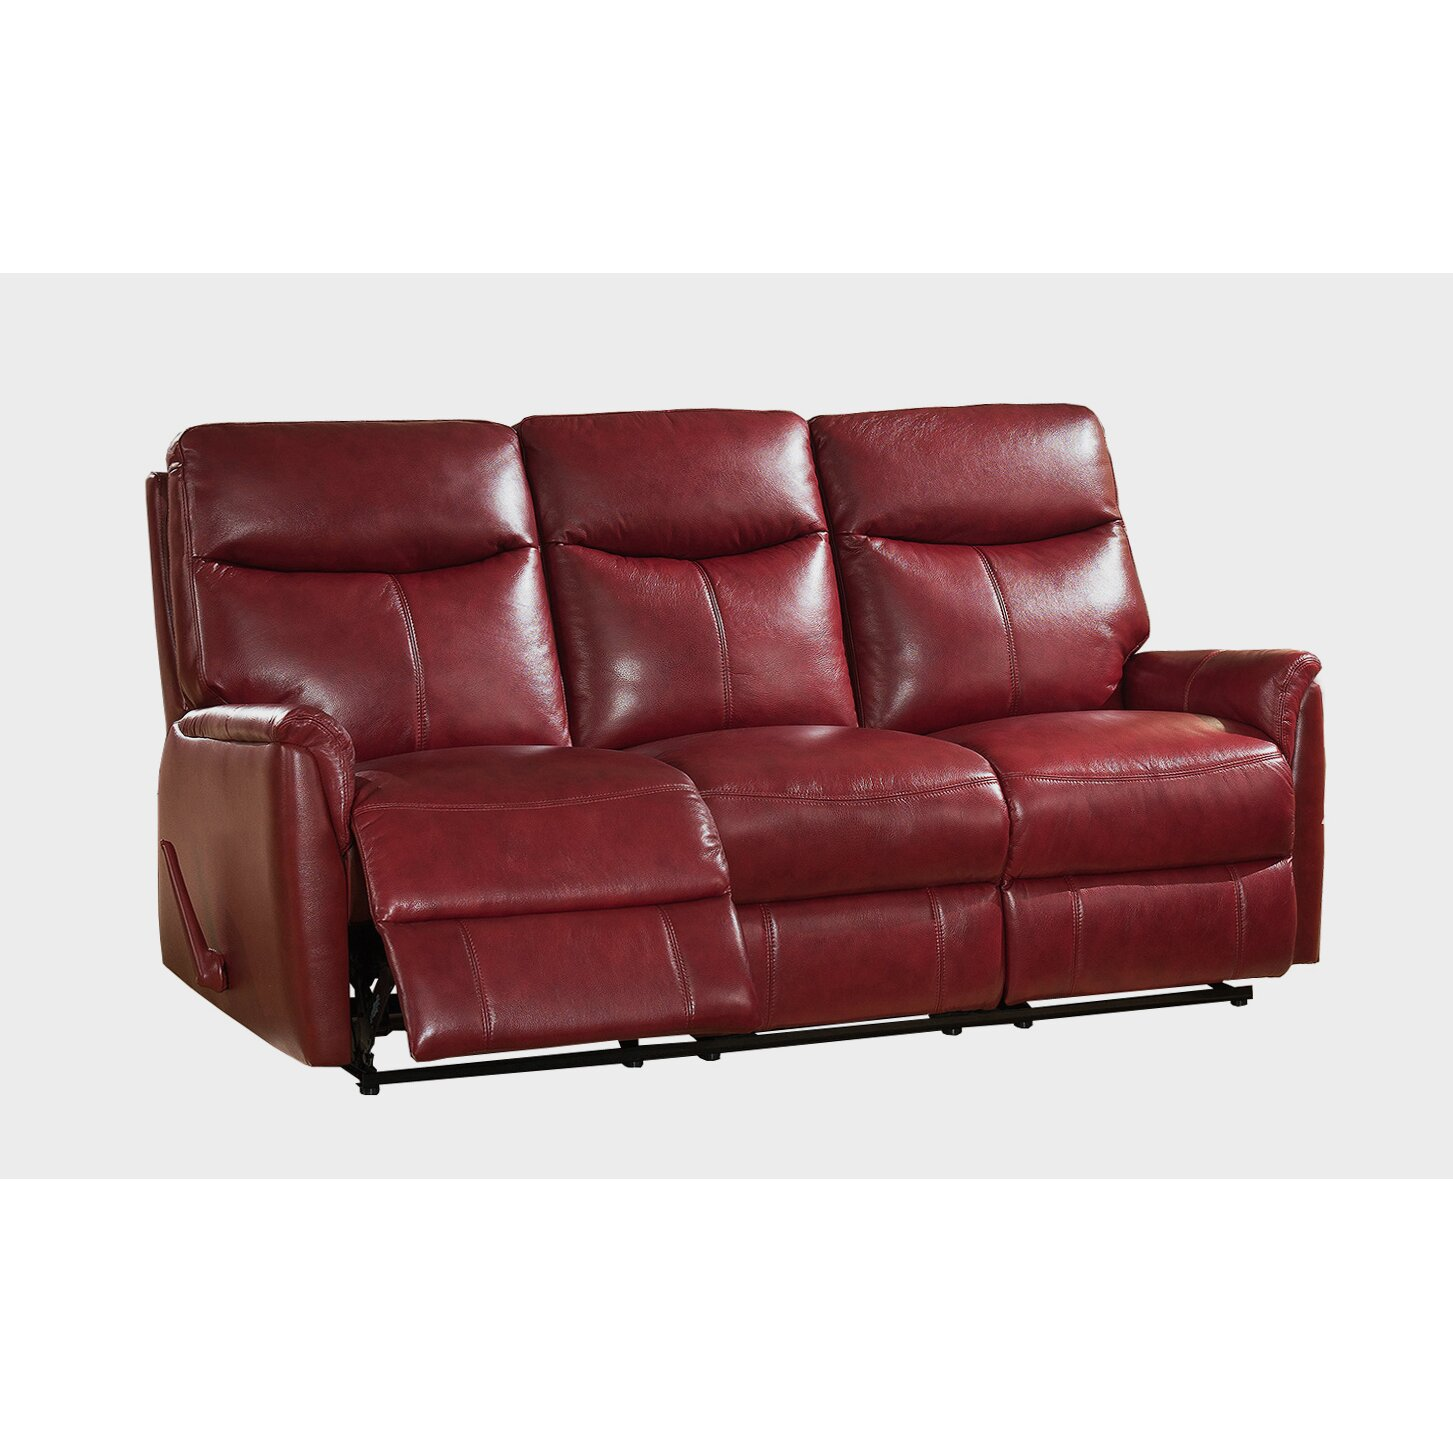 Amax napa top grain leather lay flat reclining sofa and Best loveseats